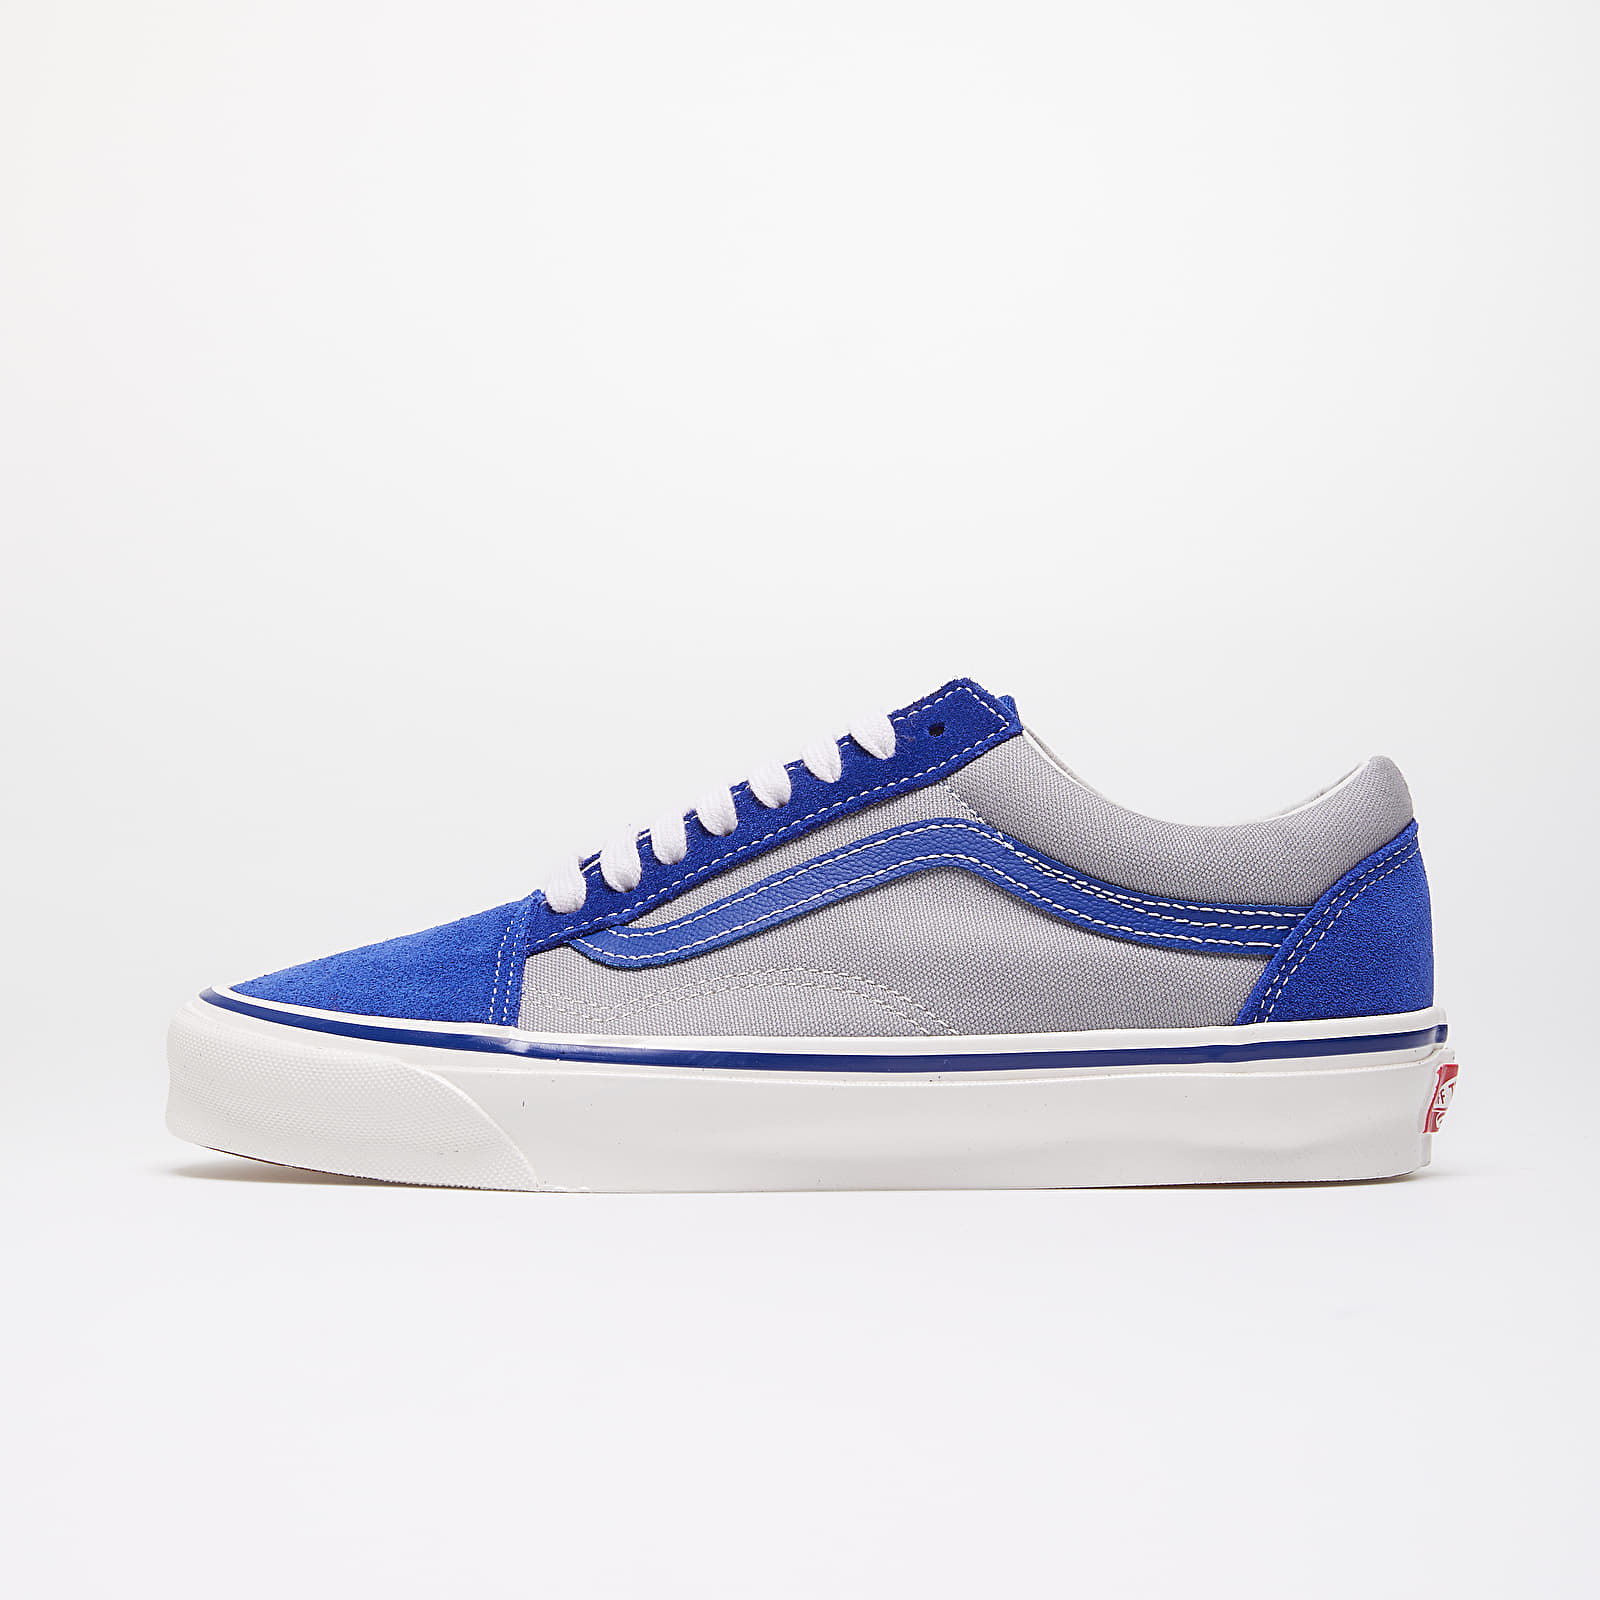 Men's shoes Vans OG Old Skool LX (OG) Sodalite Blue/ Drizzle